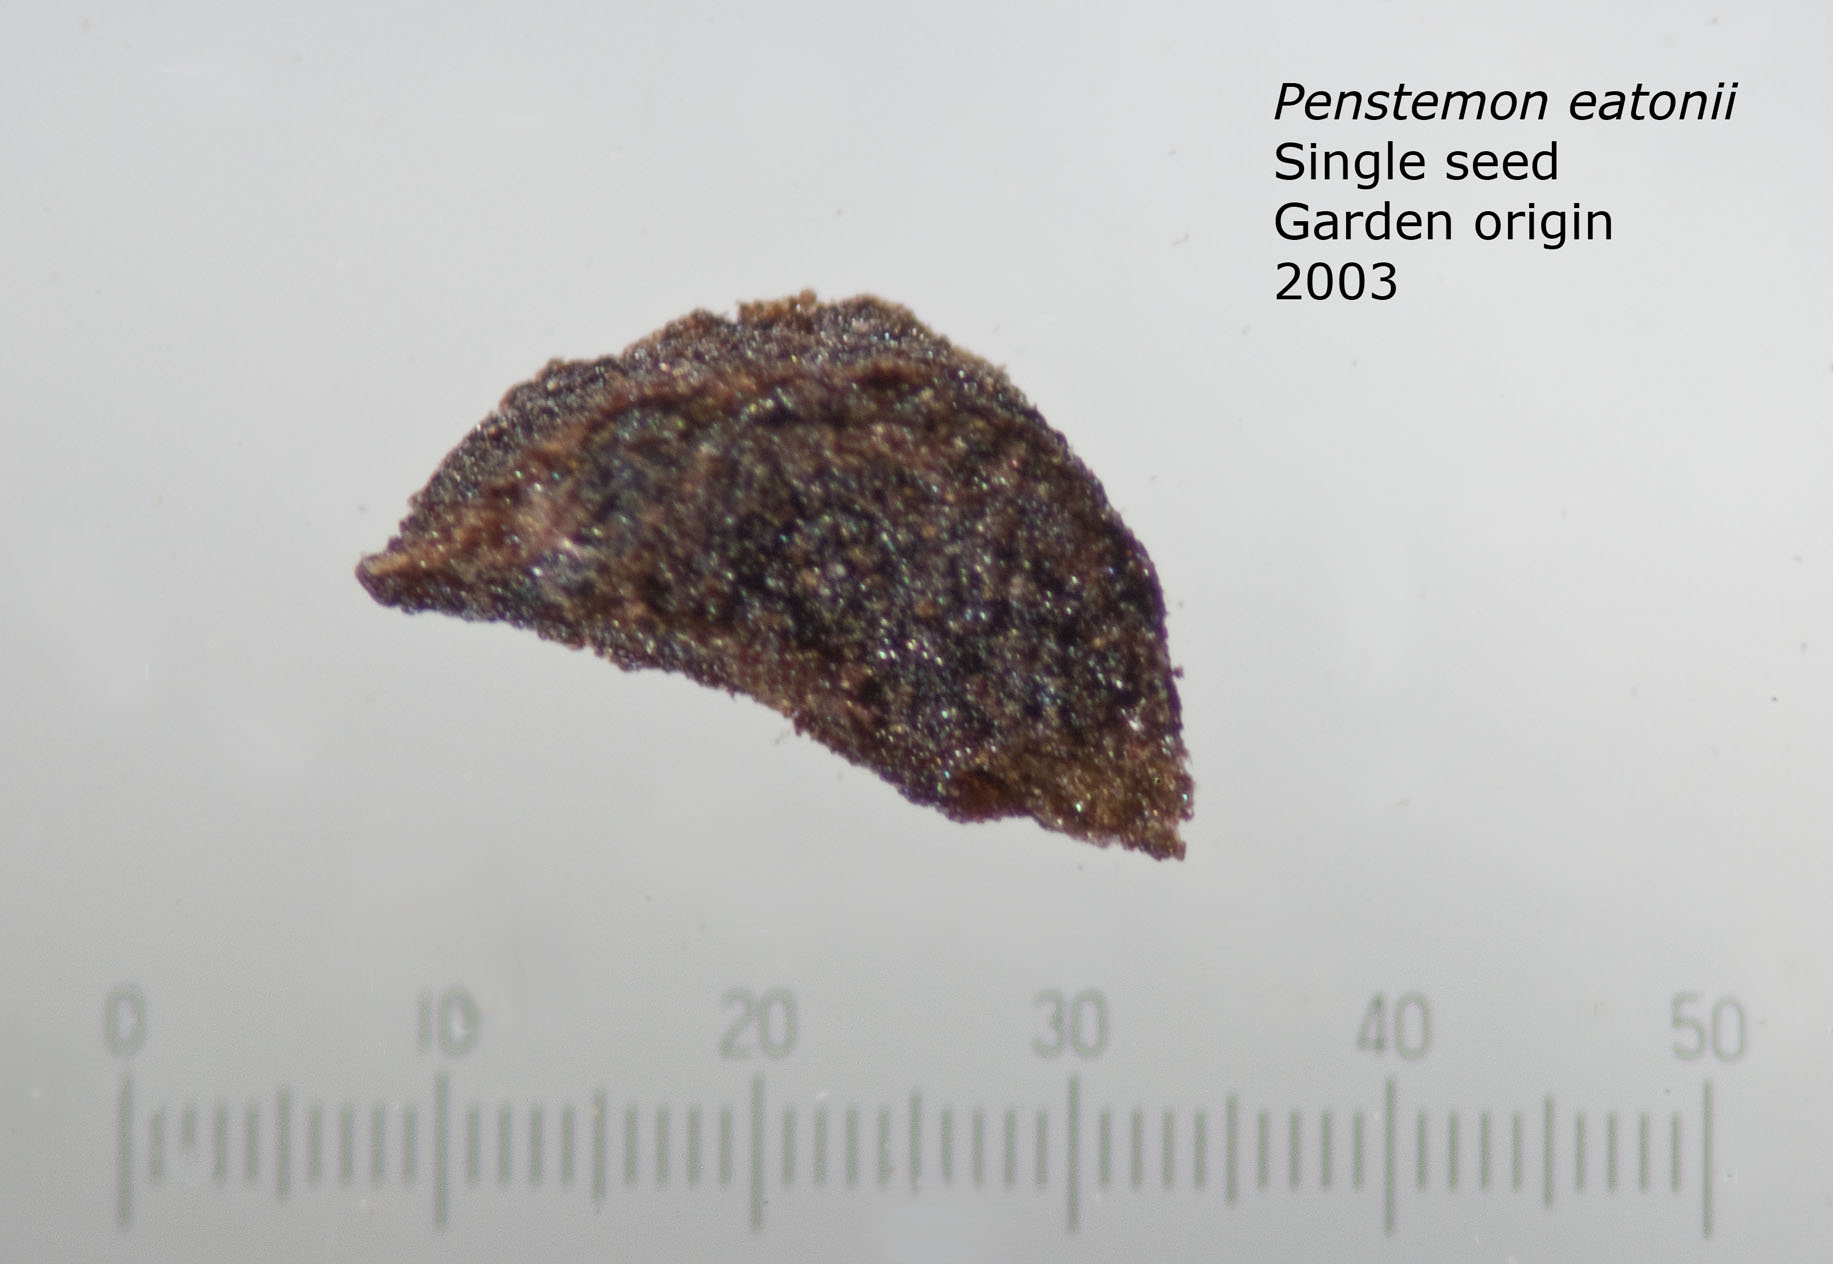 Penstemon eatonii single seed